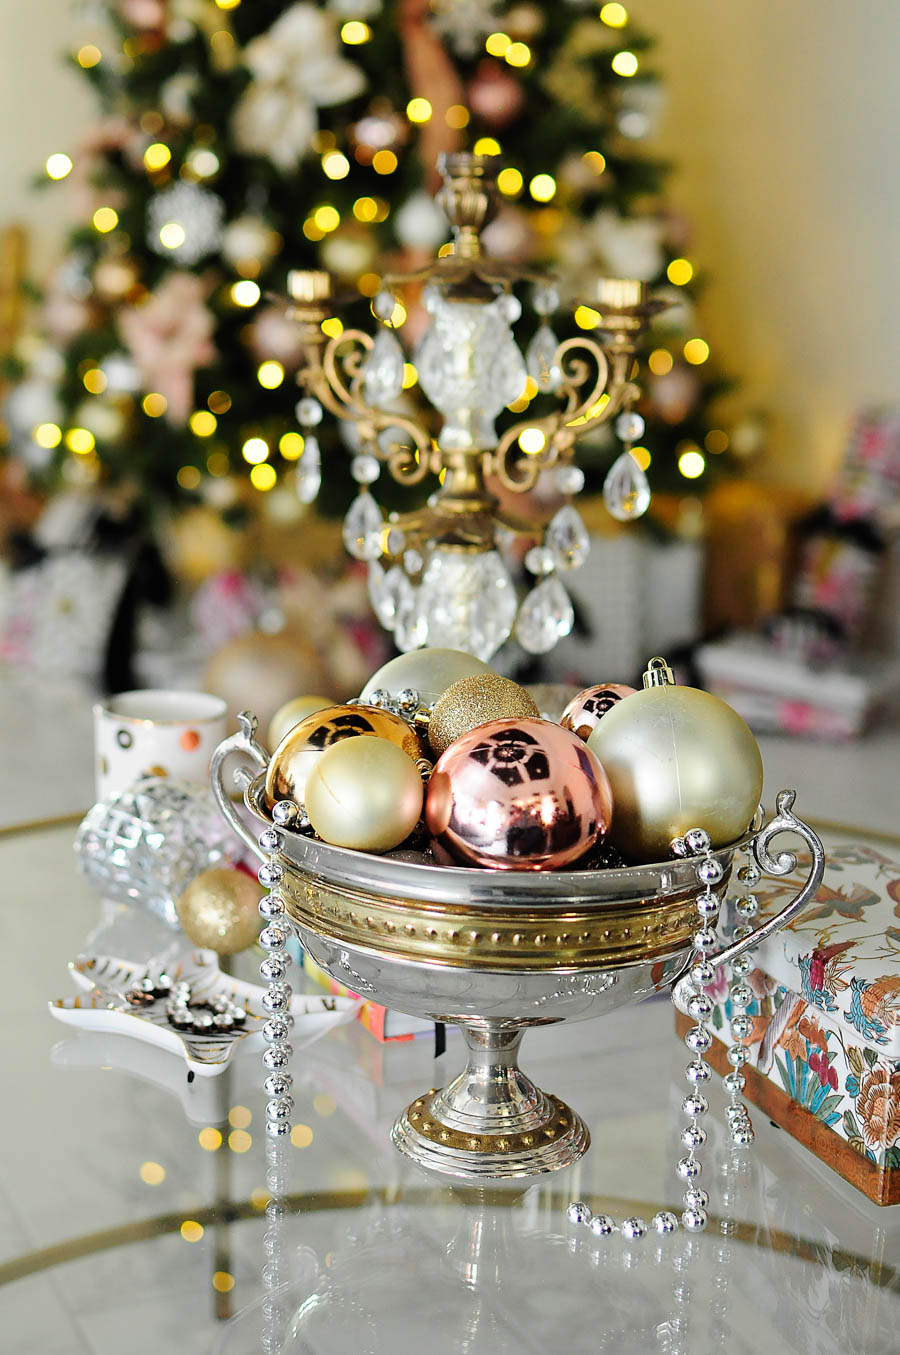 Vintage candle holder is the star of this coffee table decor vignette with blush, silver, gold and white accents.